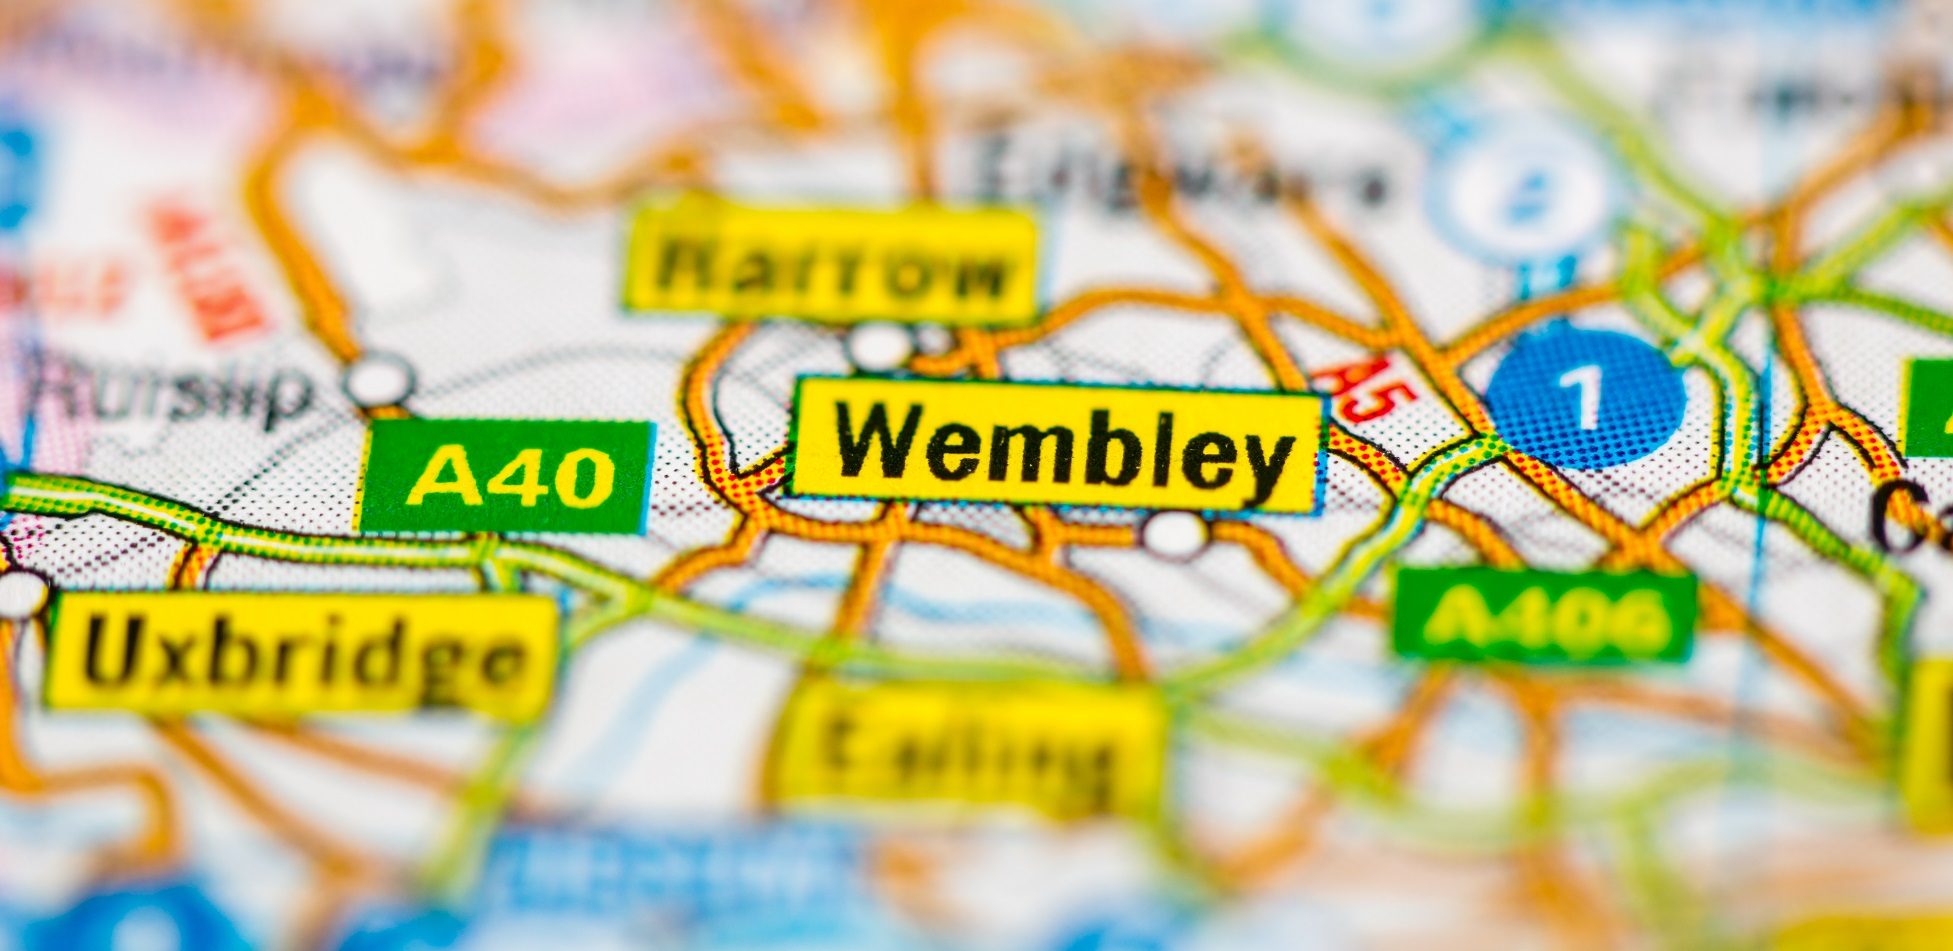 Everything you need to know about living in Wembley